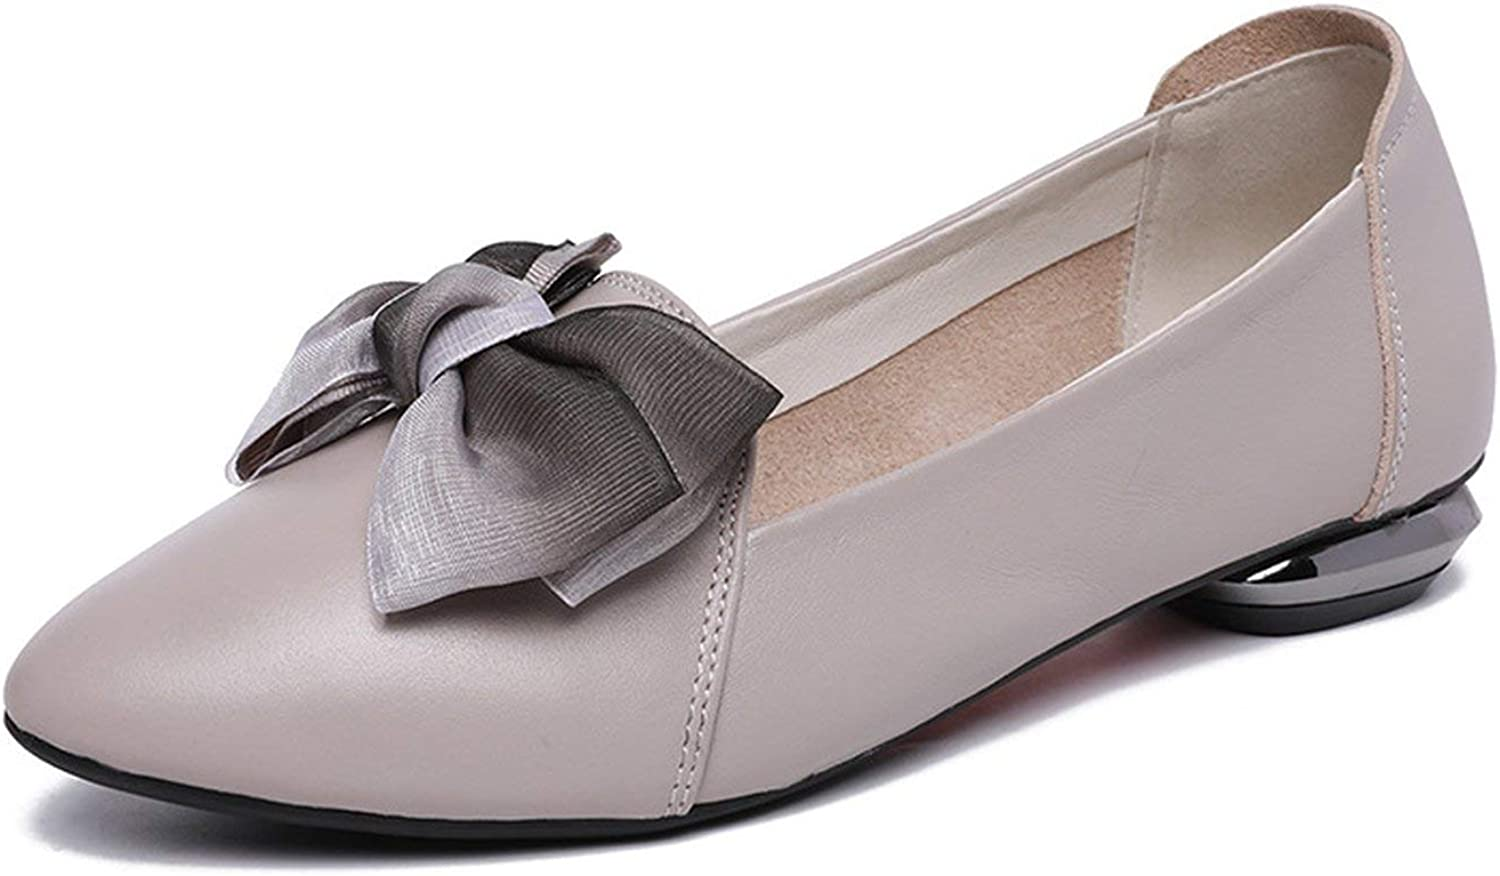 Flats Woman Bow Tie Pointed Toe Shallow Women shoes Genuine Leather Comfortable Flat shoes